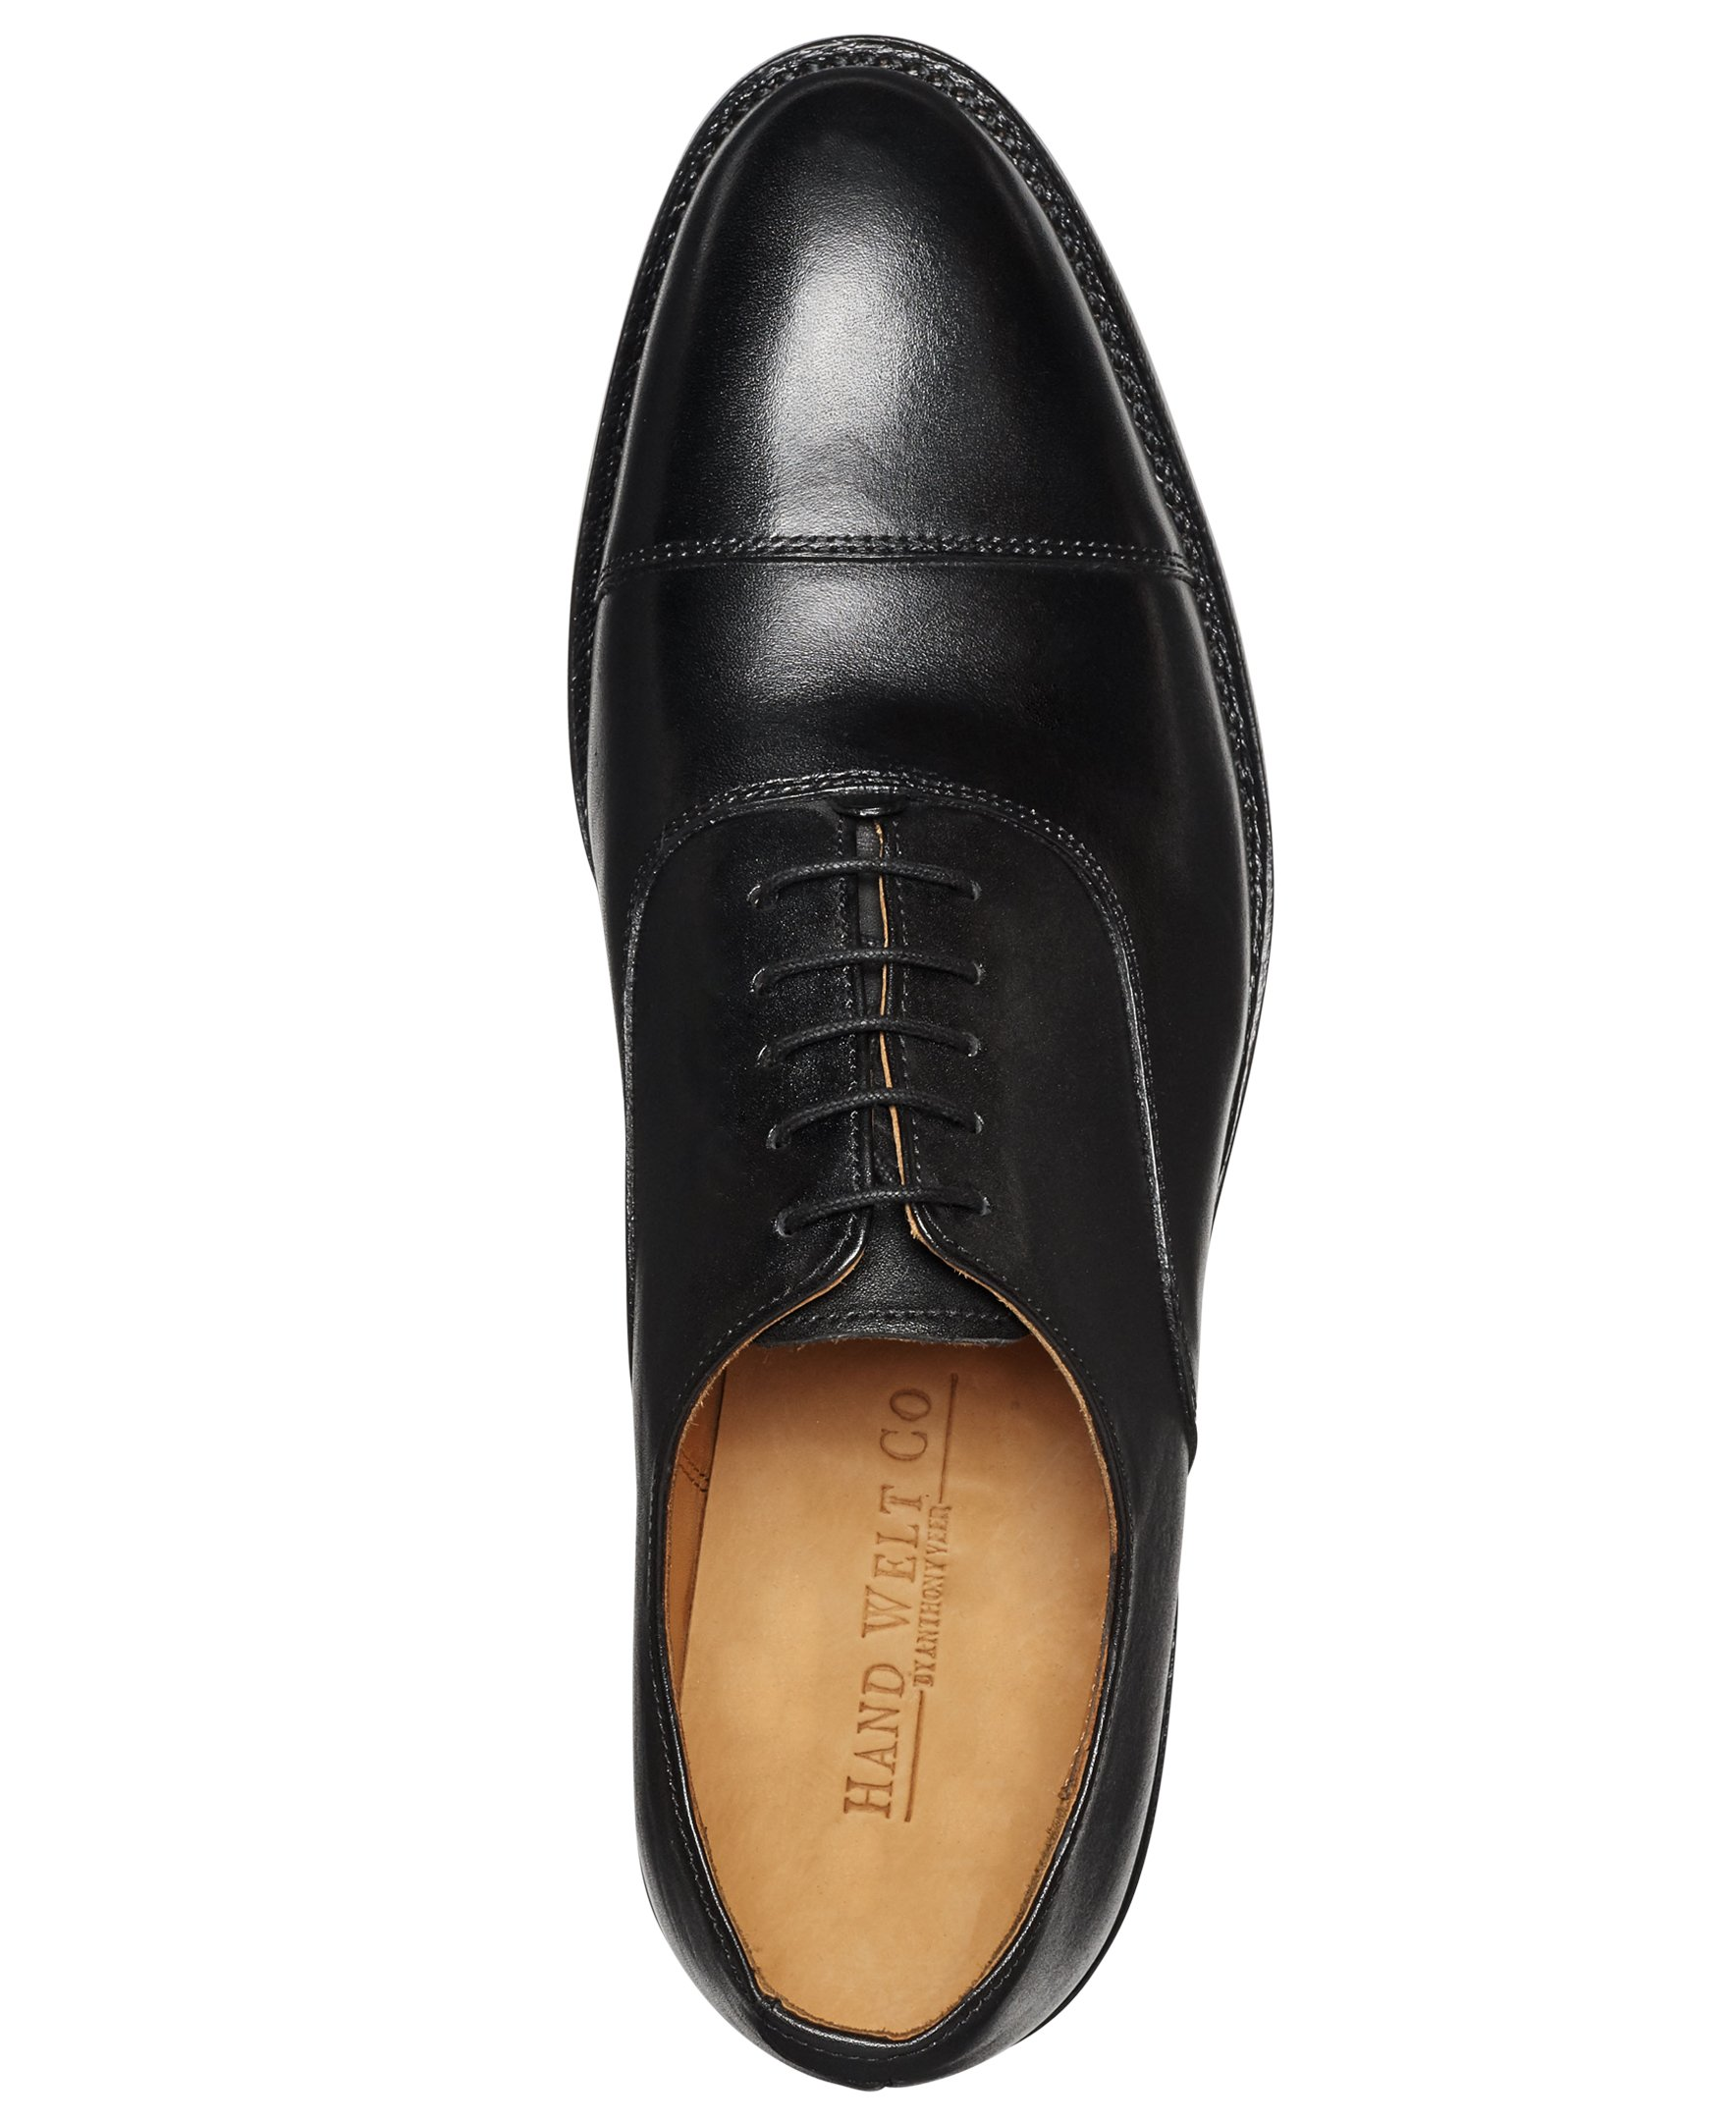 Anthony Veer Mens Clinton Cap-toe Oxford Leather Shoe in Goodyear Welted Construction (10.5 D, Black) by Anthony Veer (Image #4)